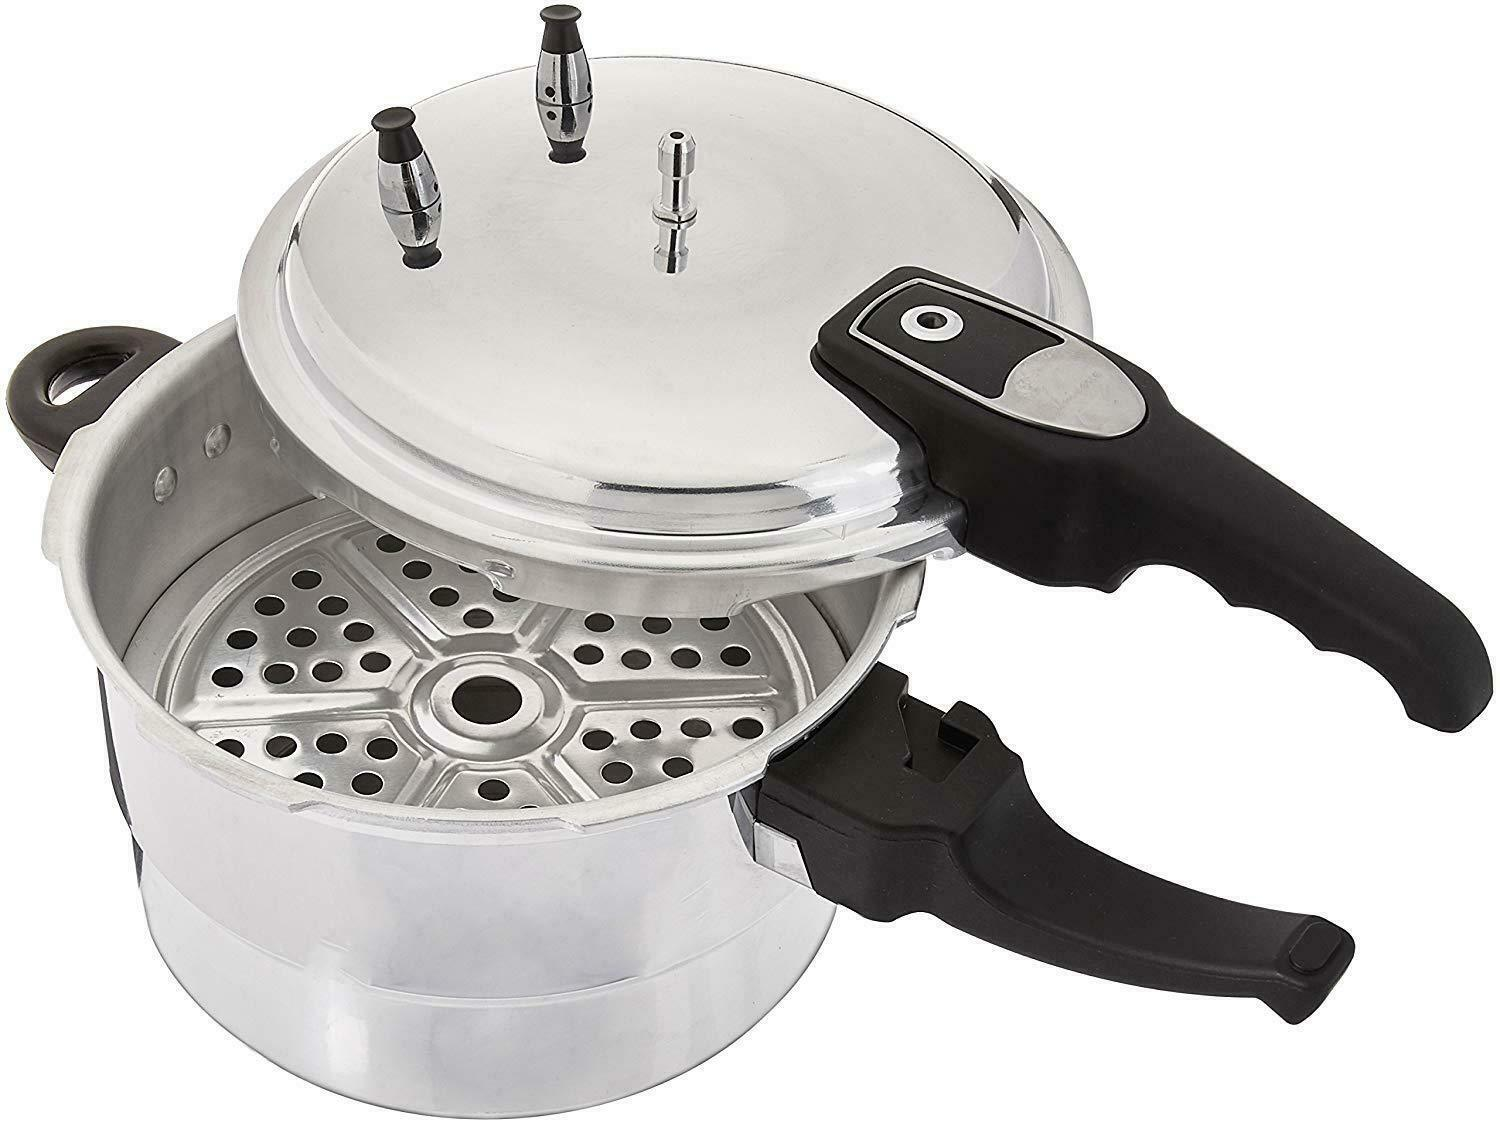 HIGH QUALITY ALUMINUM PRESSURE COOKER WITH STEAMER,4.2/5.2/7